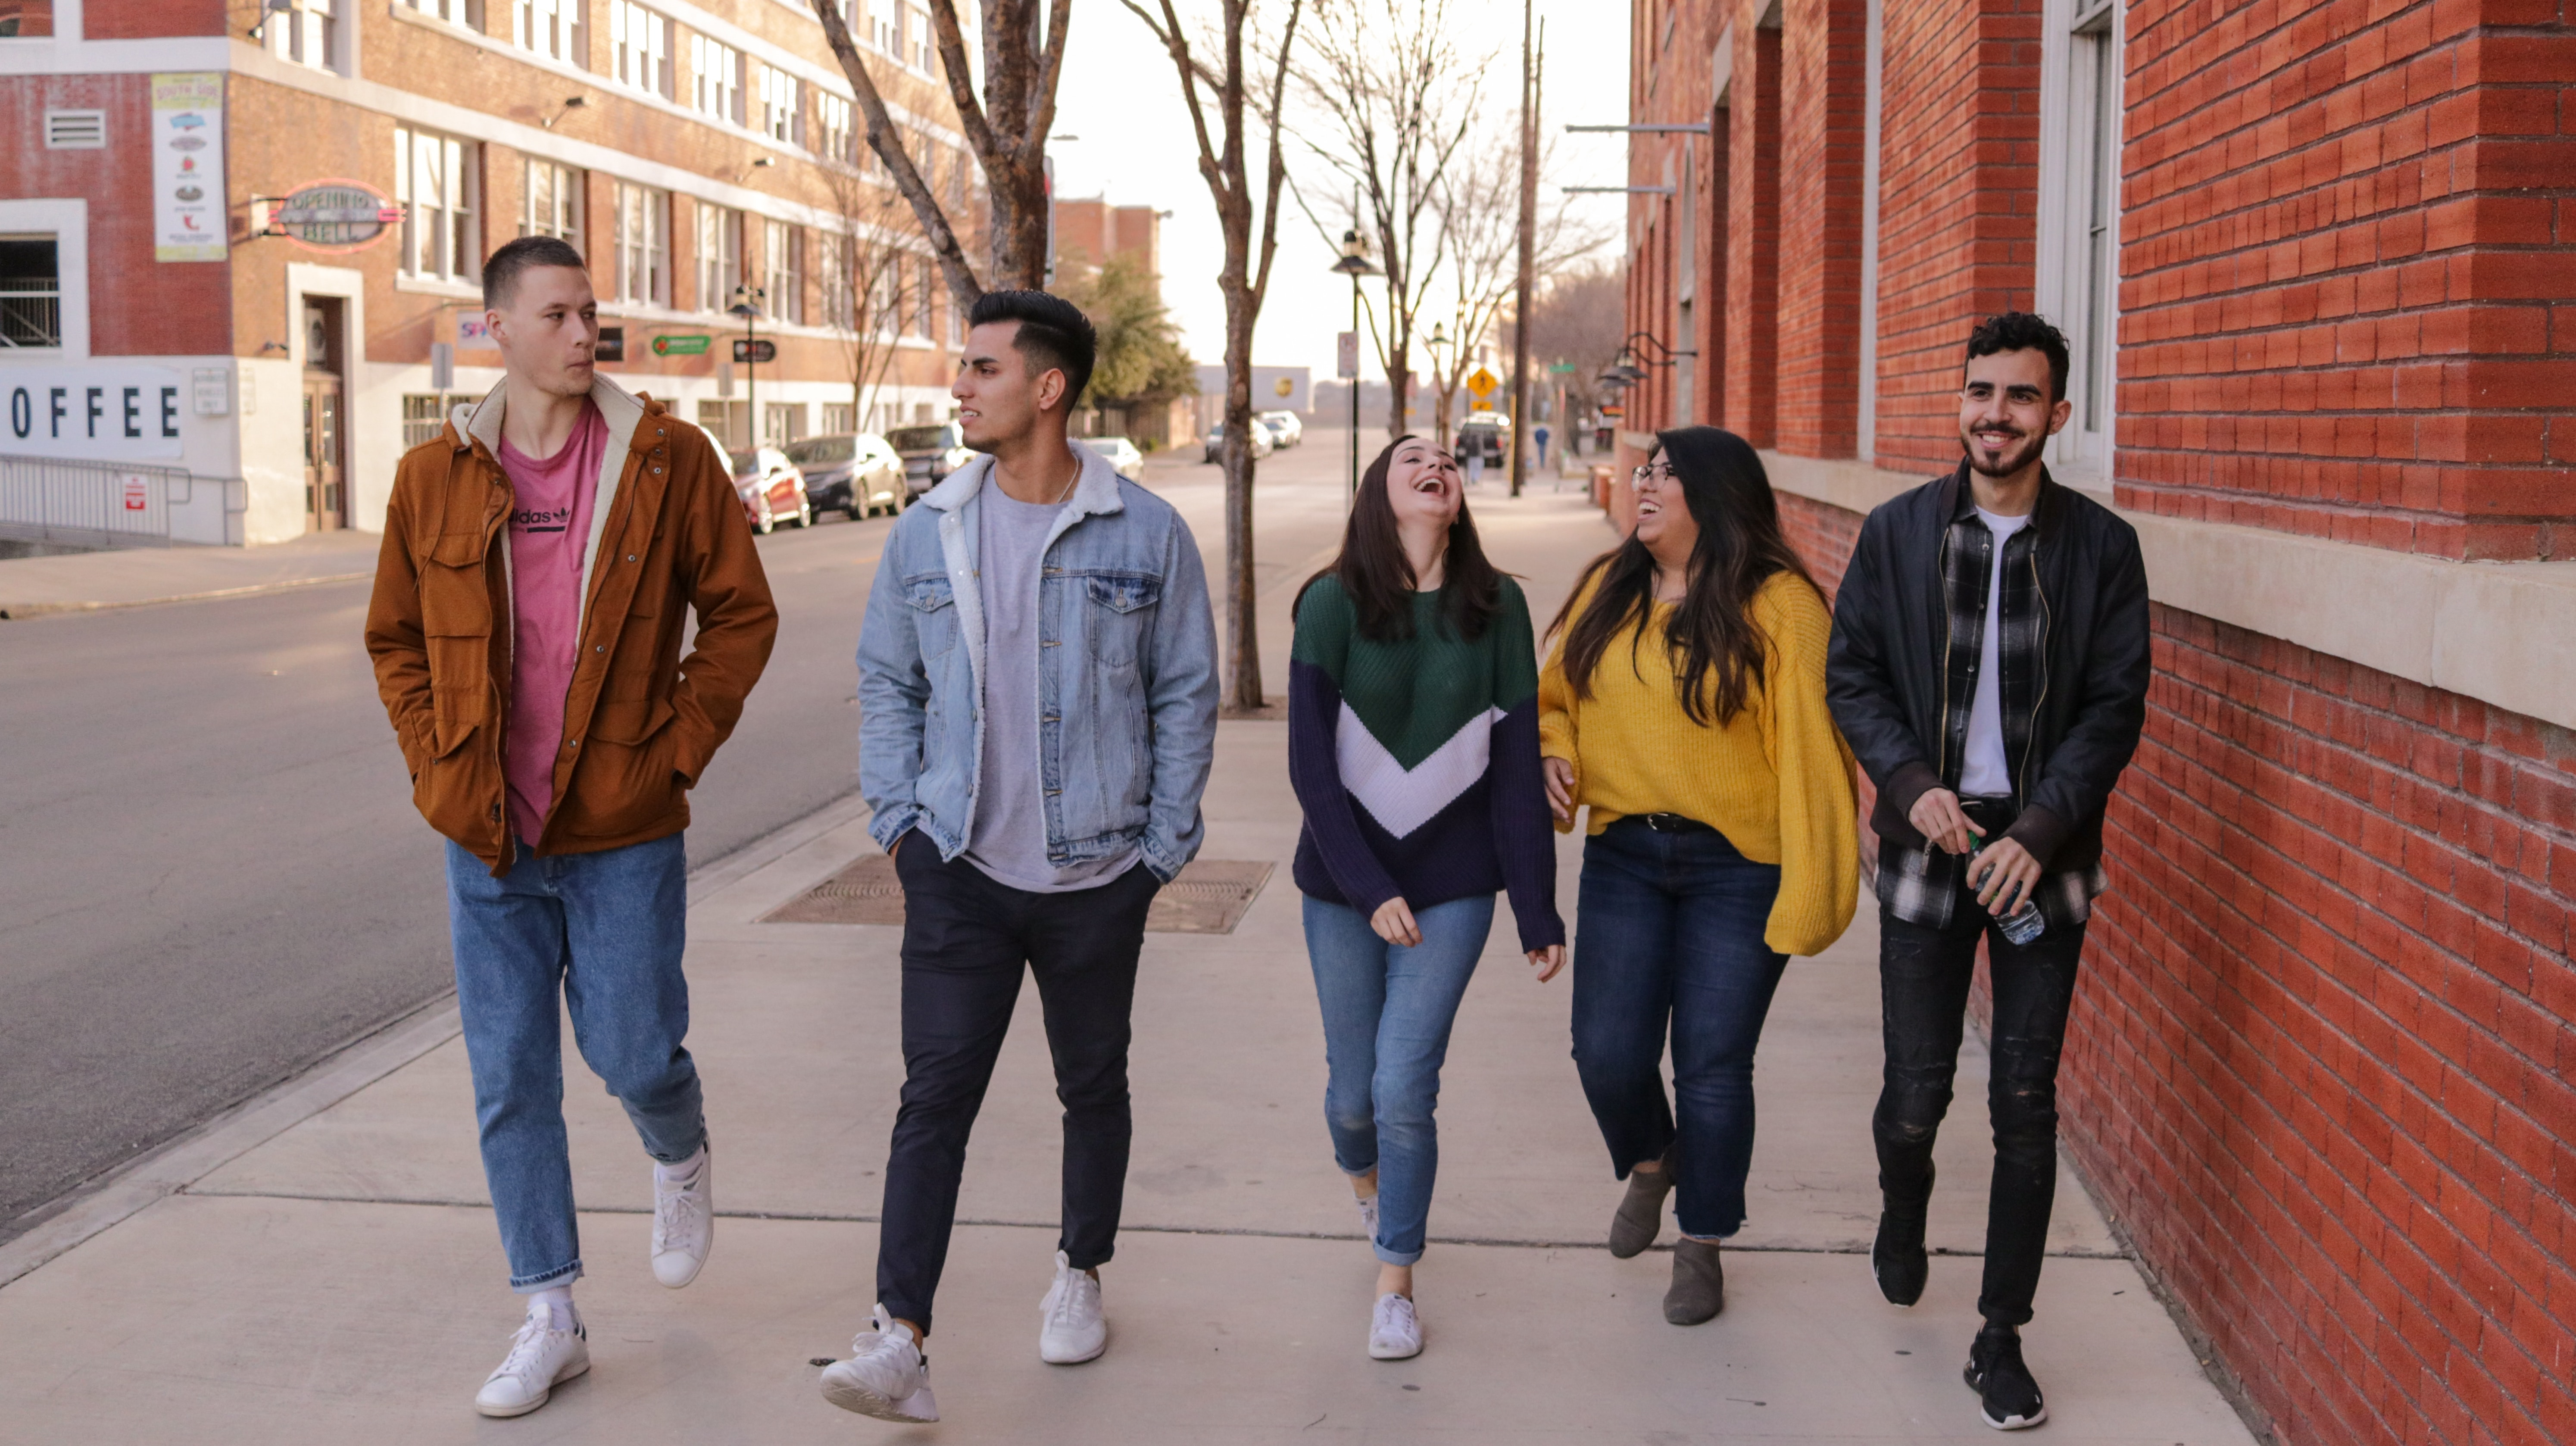 5 college students walking